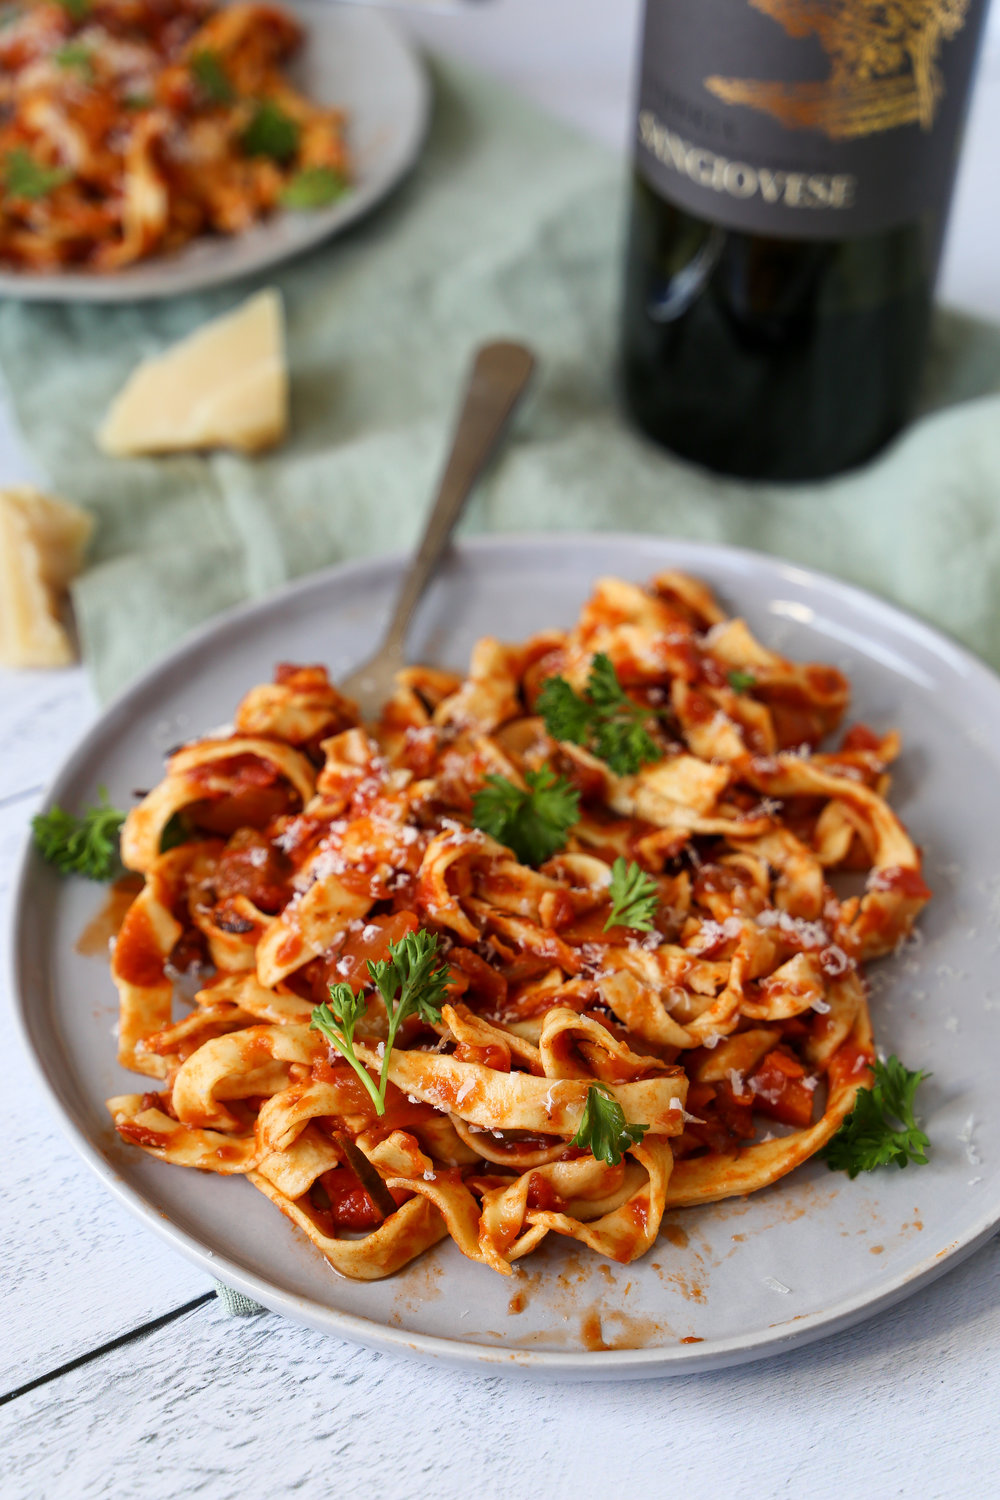 Vegetable Ragu - Because you don't need meat to have fun.